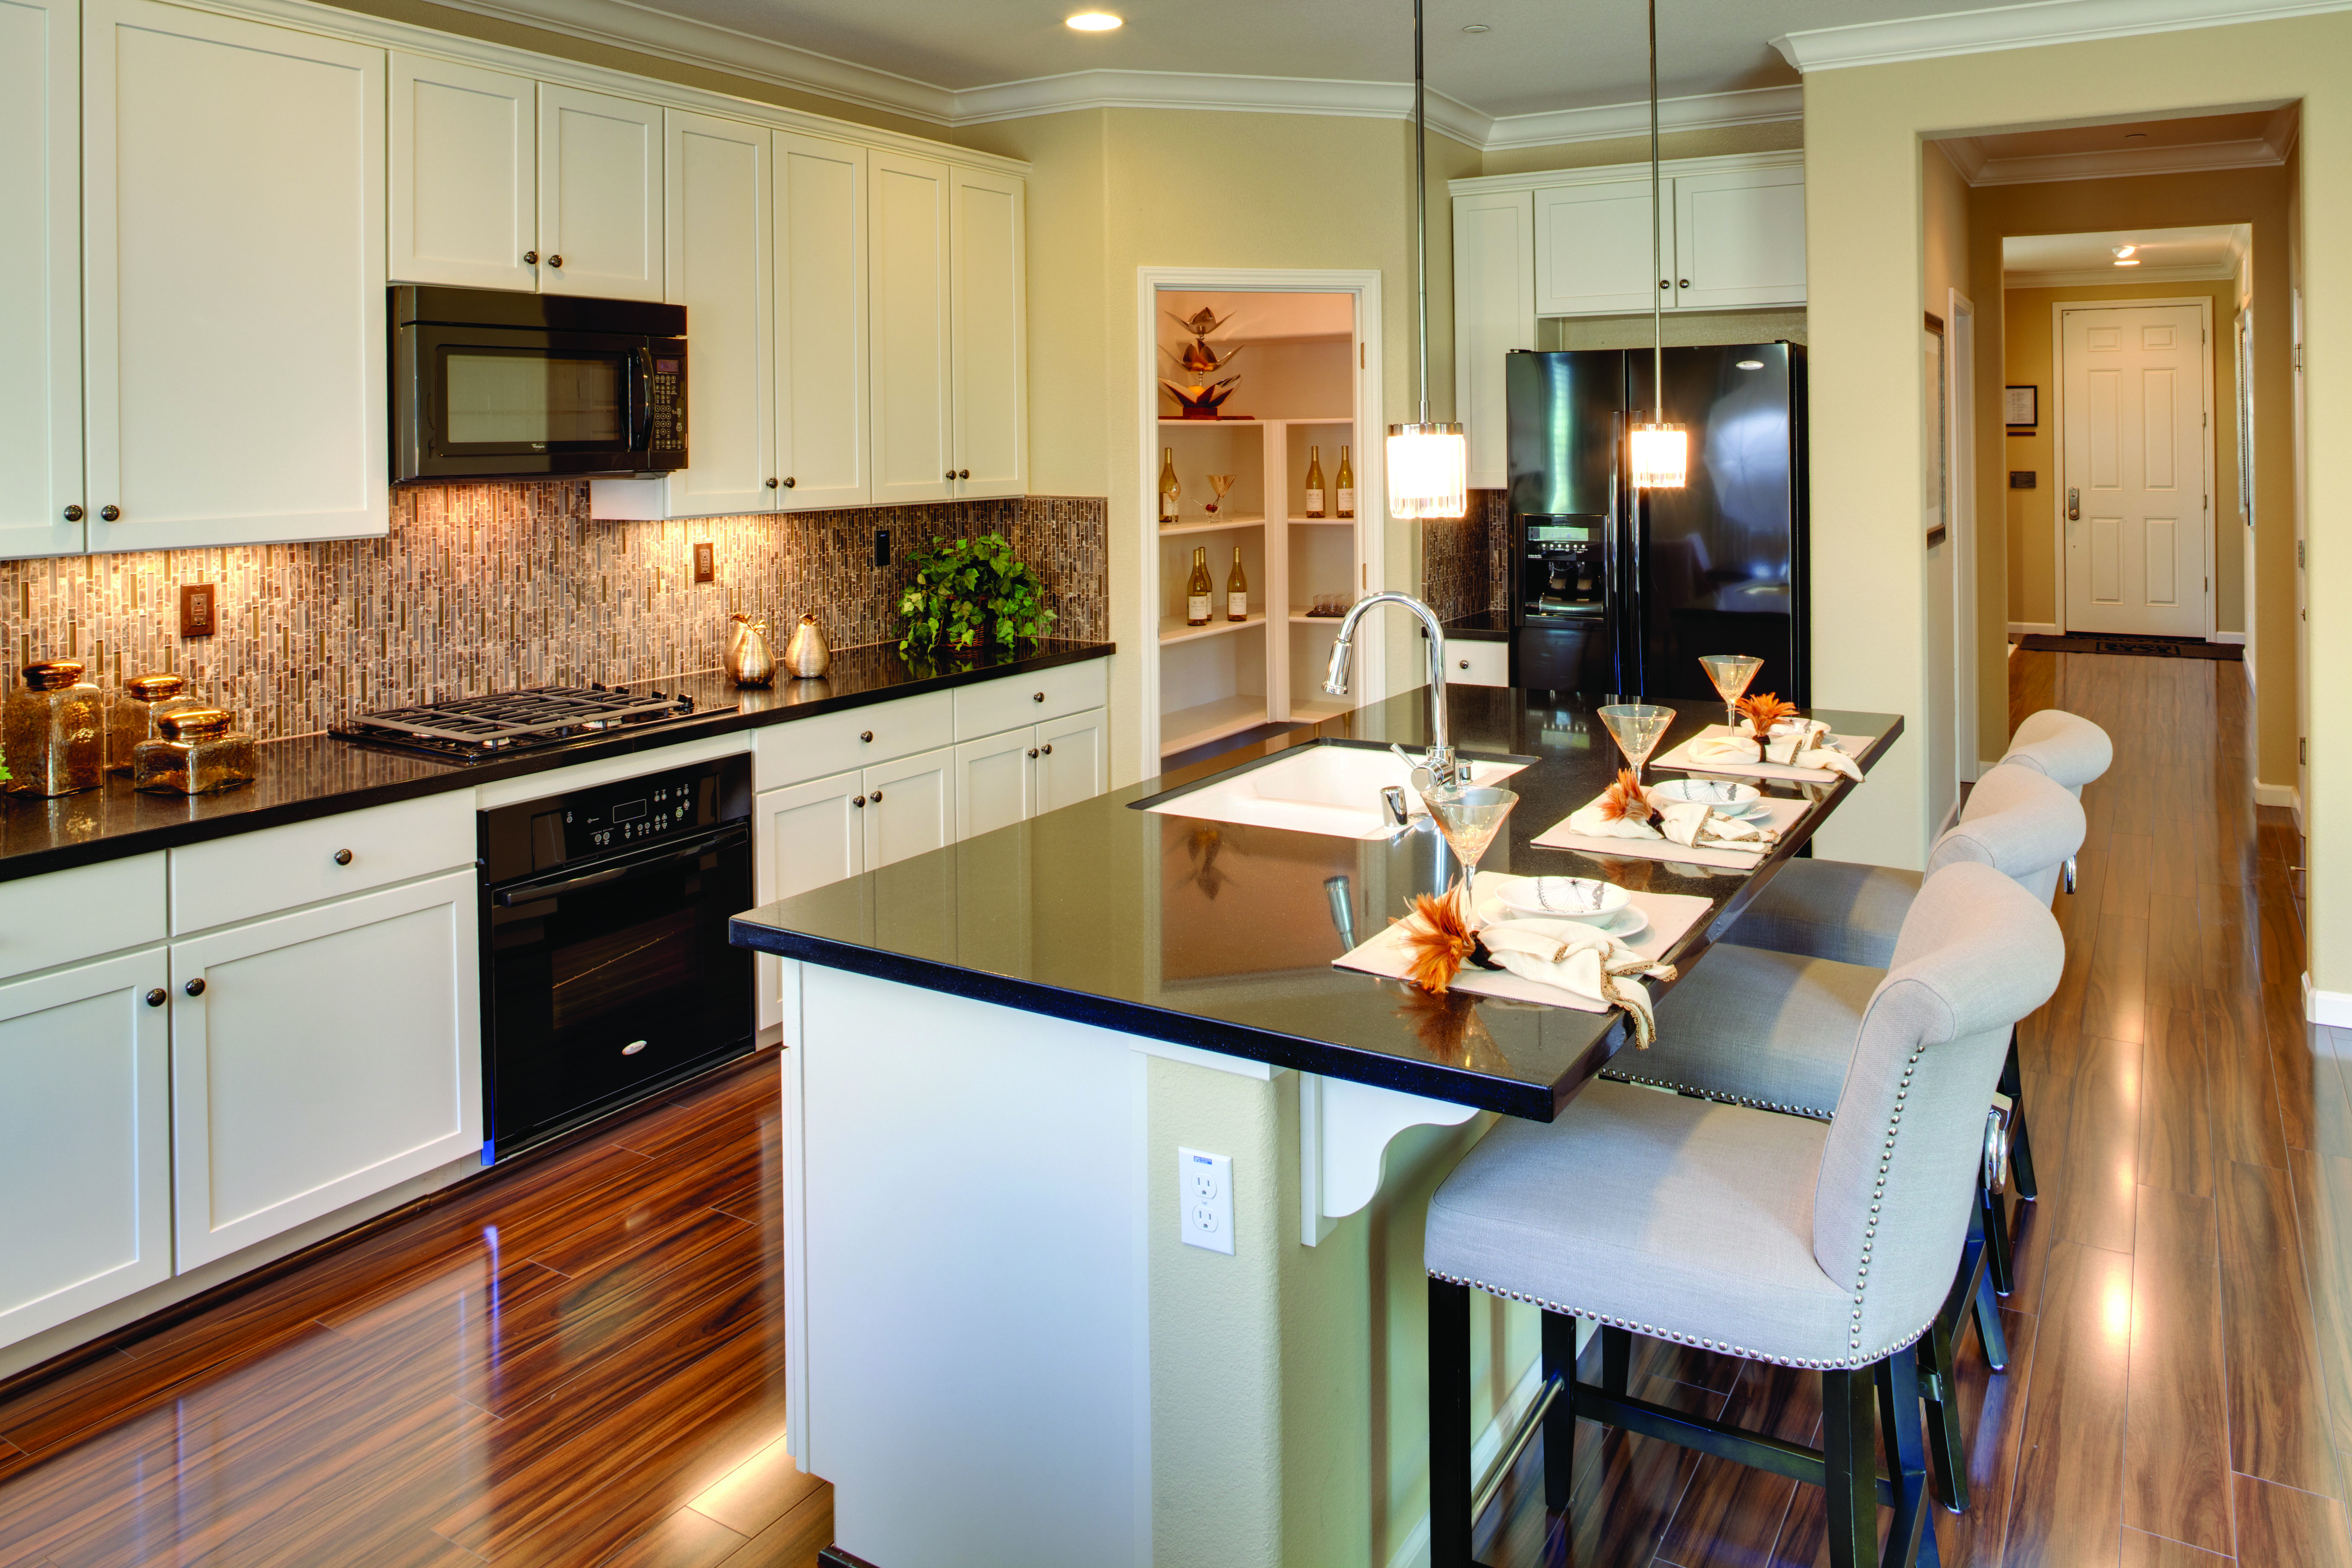 New Homes For Sale in Bay Area, CA by KB Home Kb homes